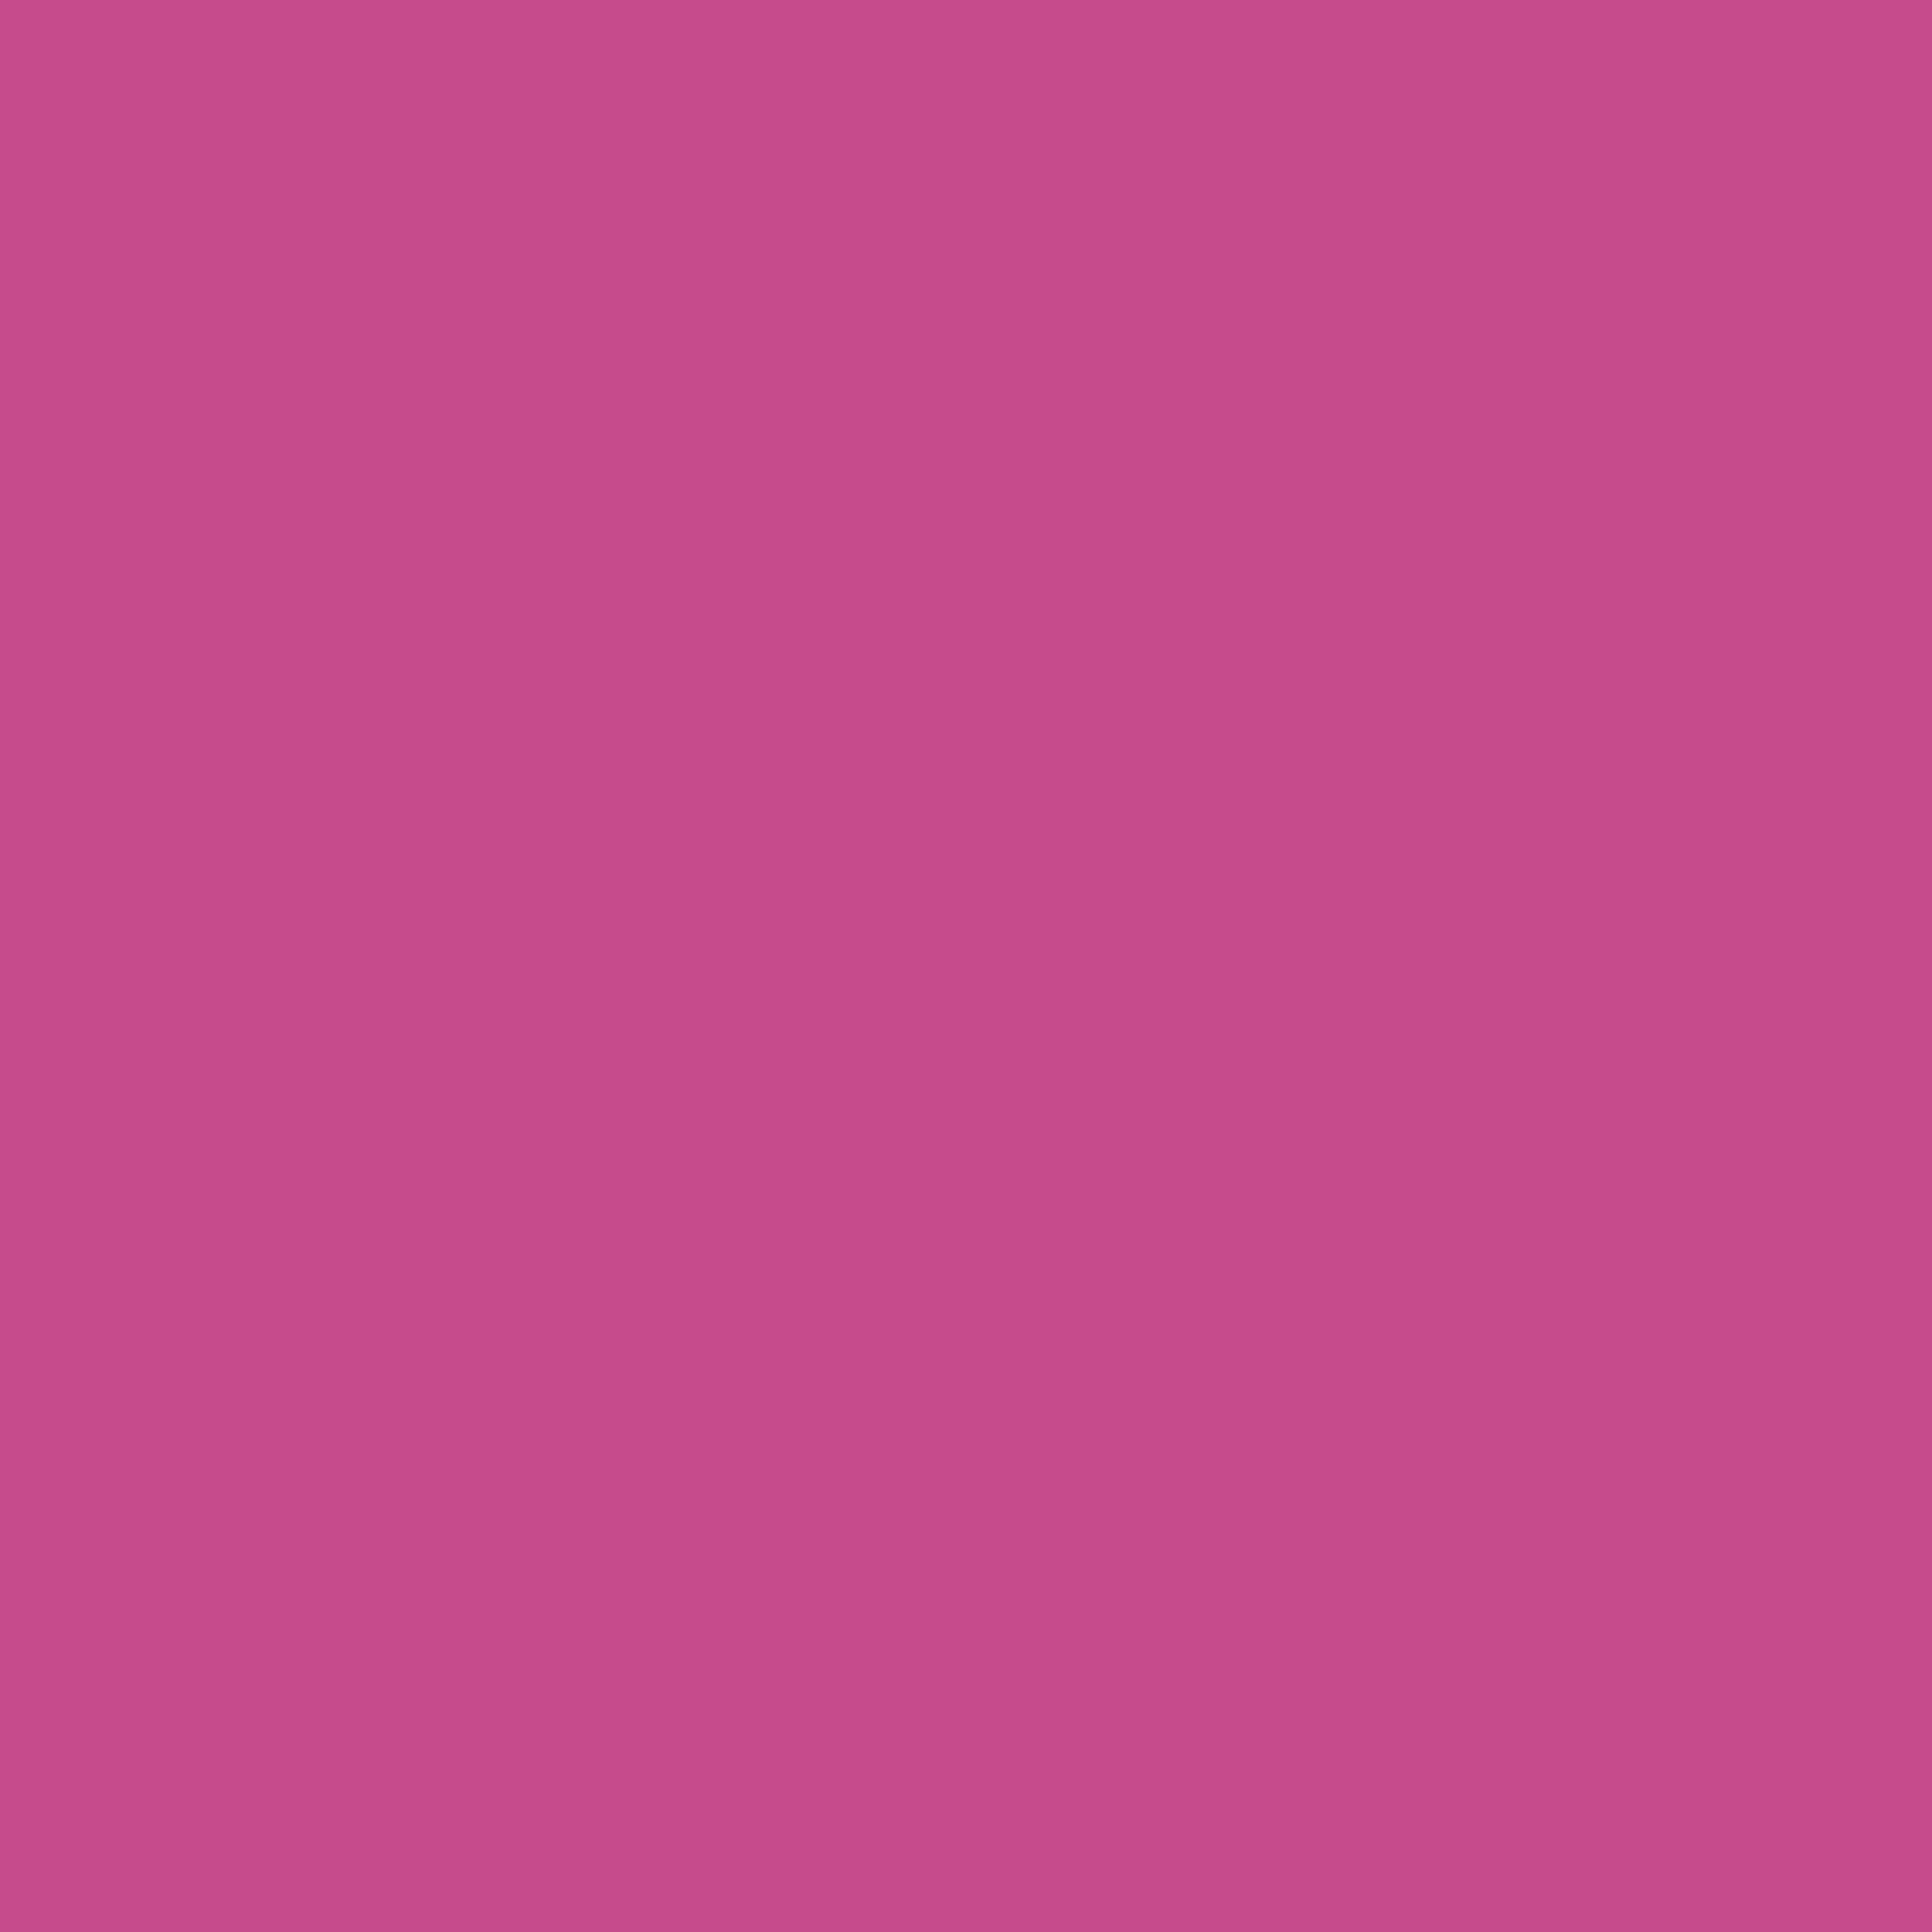 3600x3600 Mulberry Solid Color Background